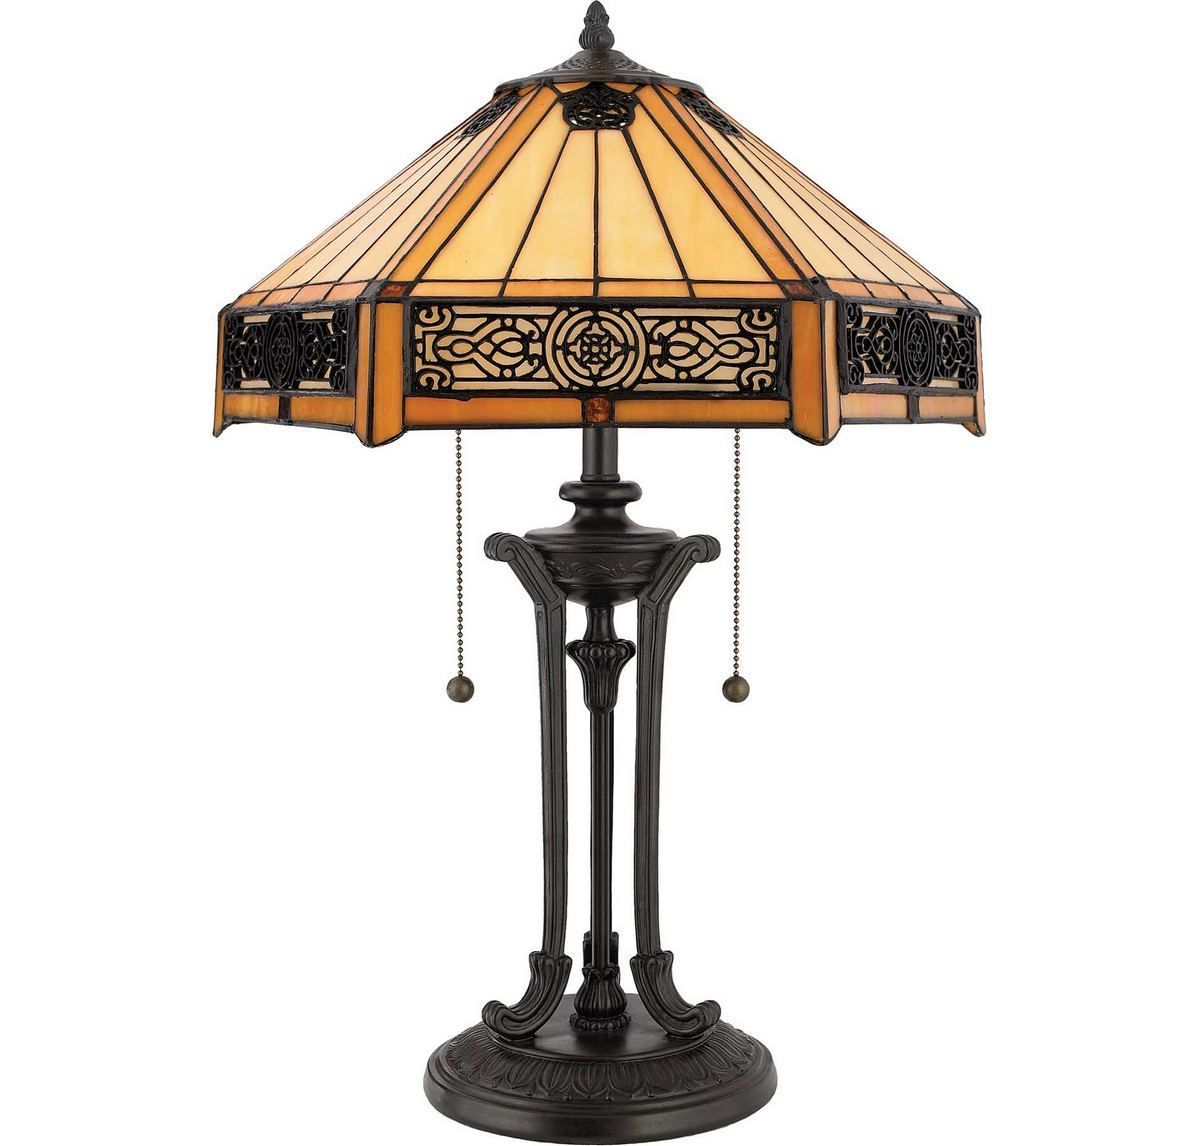 Quoizel Indus 2 Light 23 Quot Table Lamp In Vintage Bronze In